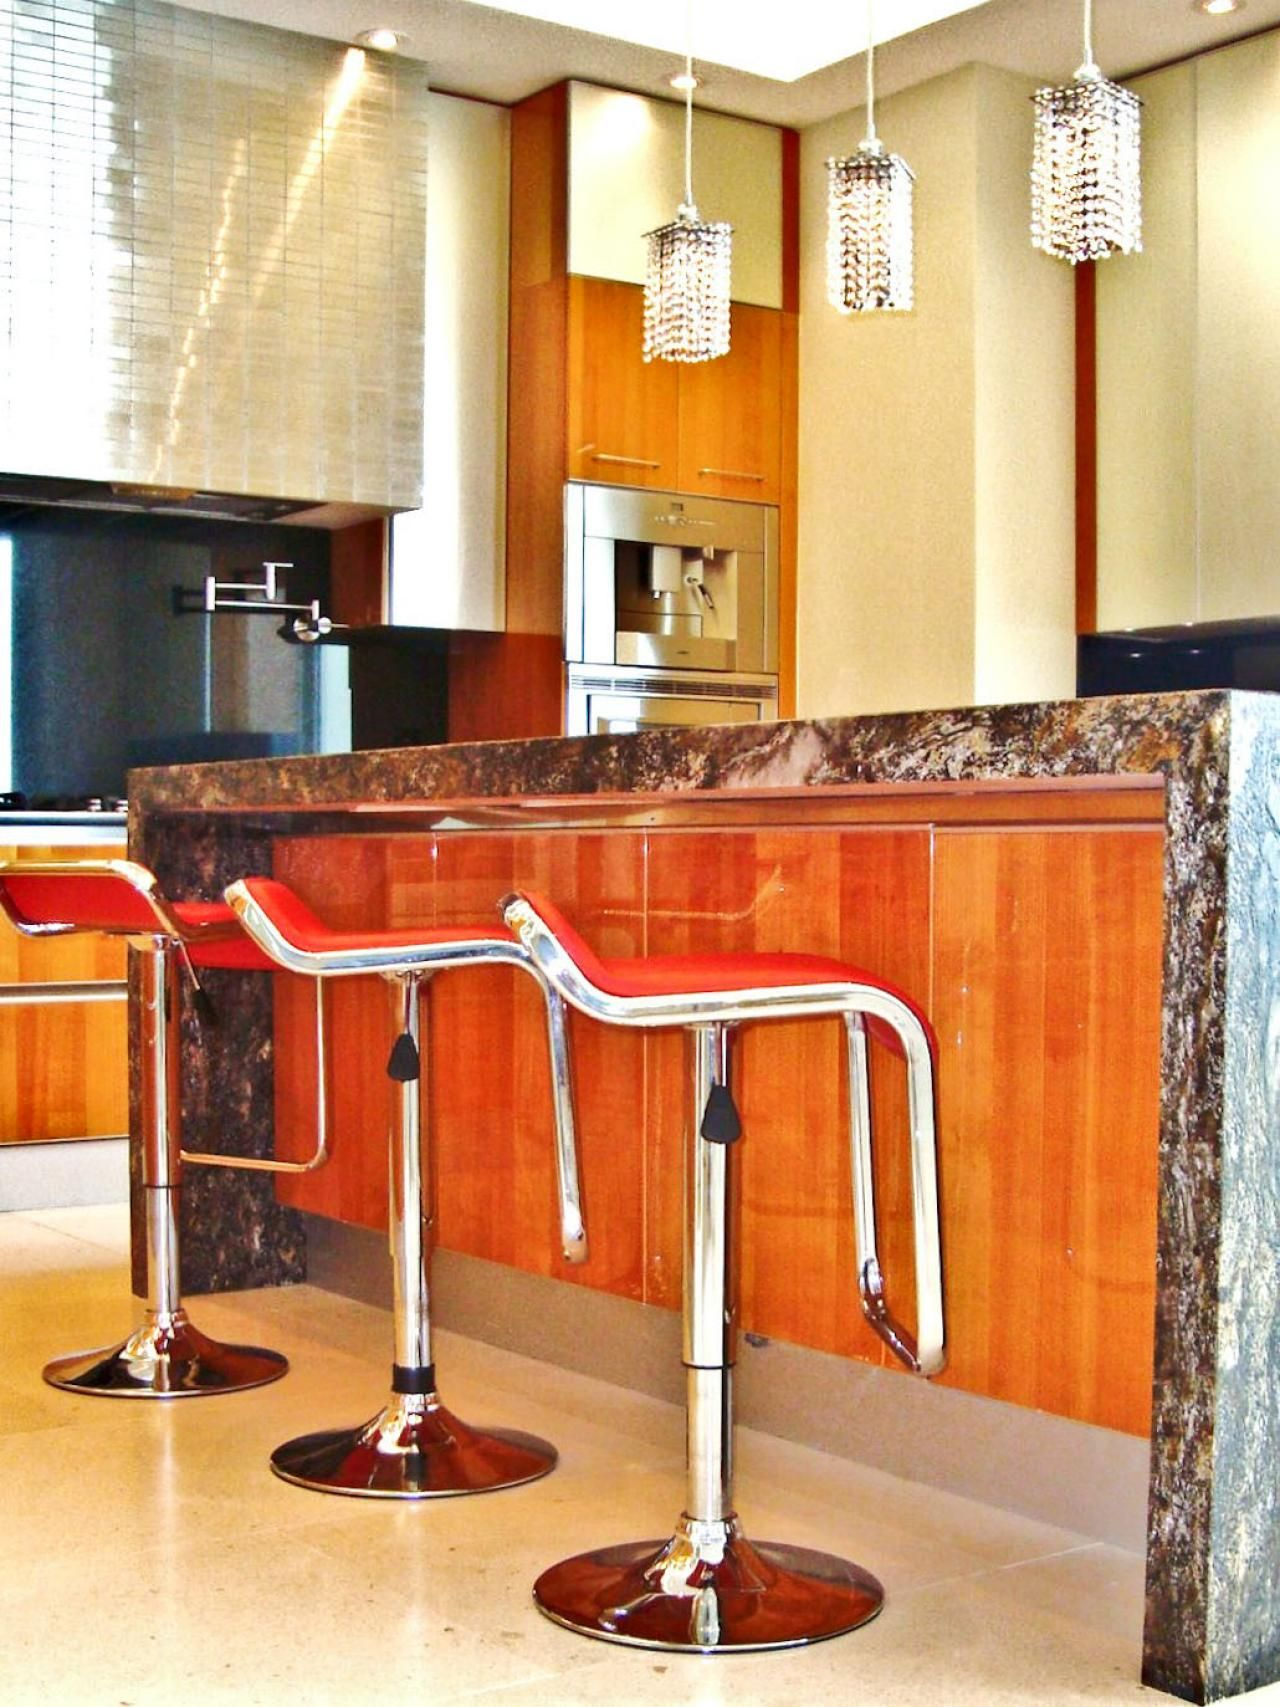 Modern Kitchen With Red Bar Stools Stools For Kitchen Island Modern Bar Stools Kitchen Bar Table